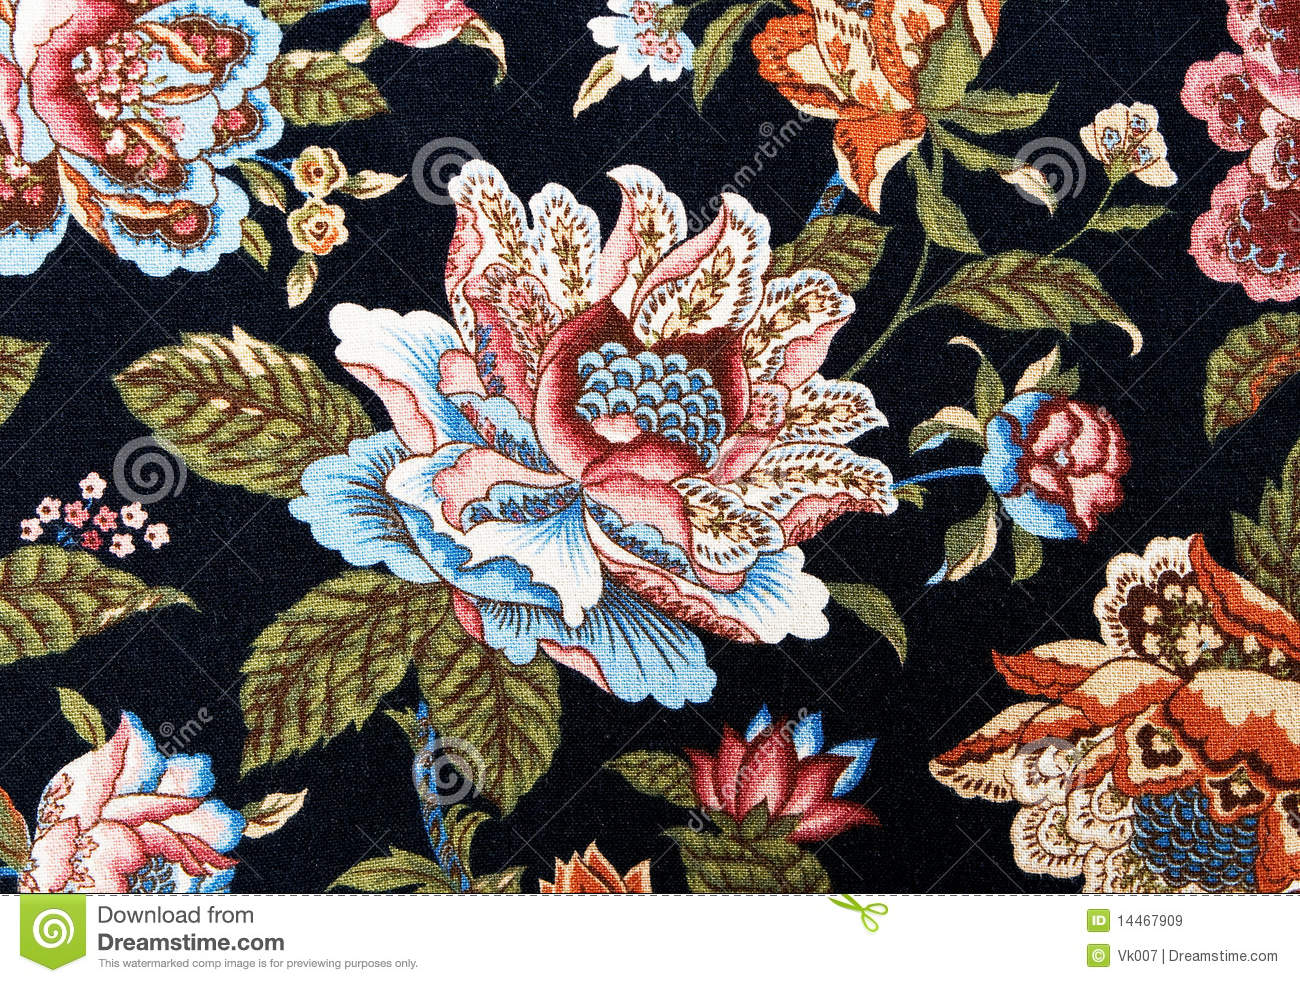 Victorian Wallpaper Black Pattern Of An Ornate Colorful Floral Tapestry Royalty Free